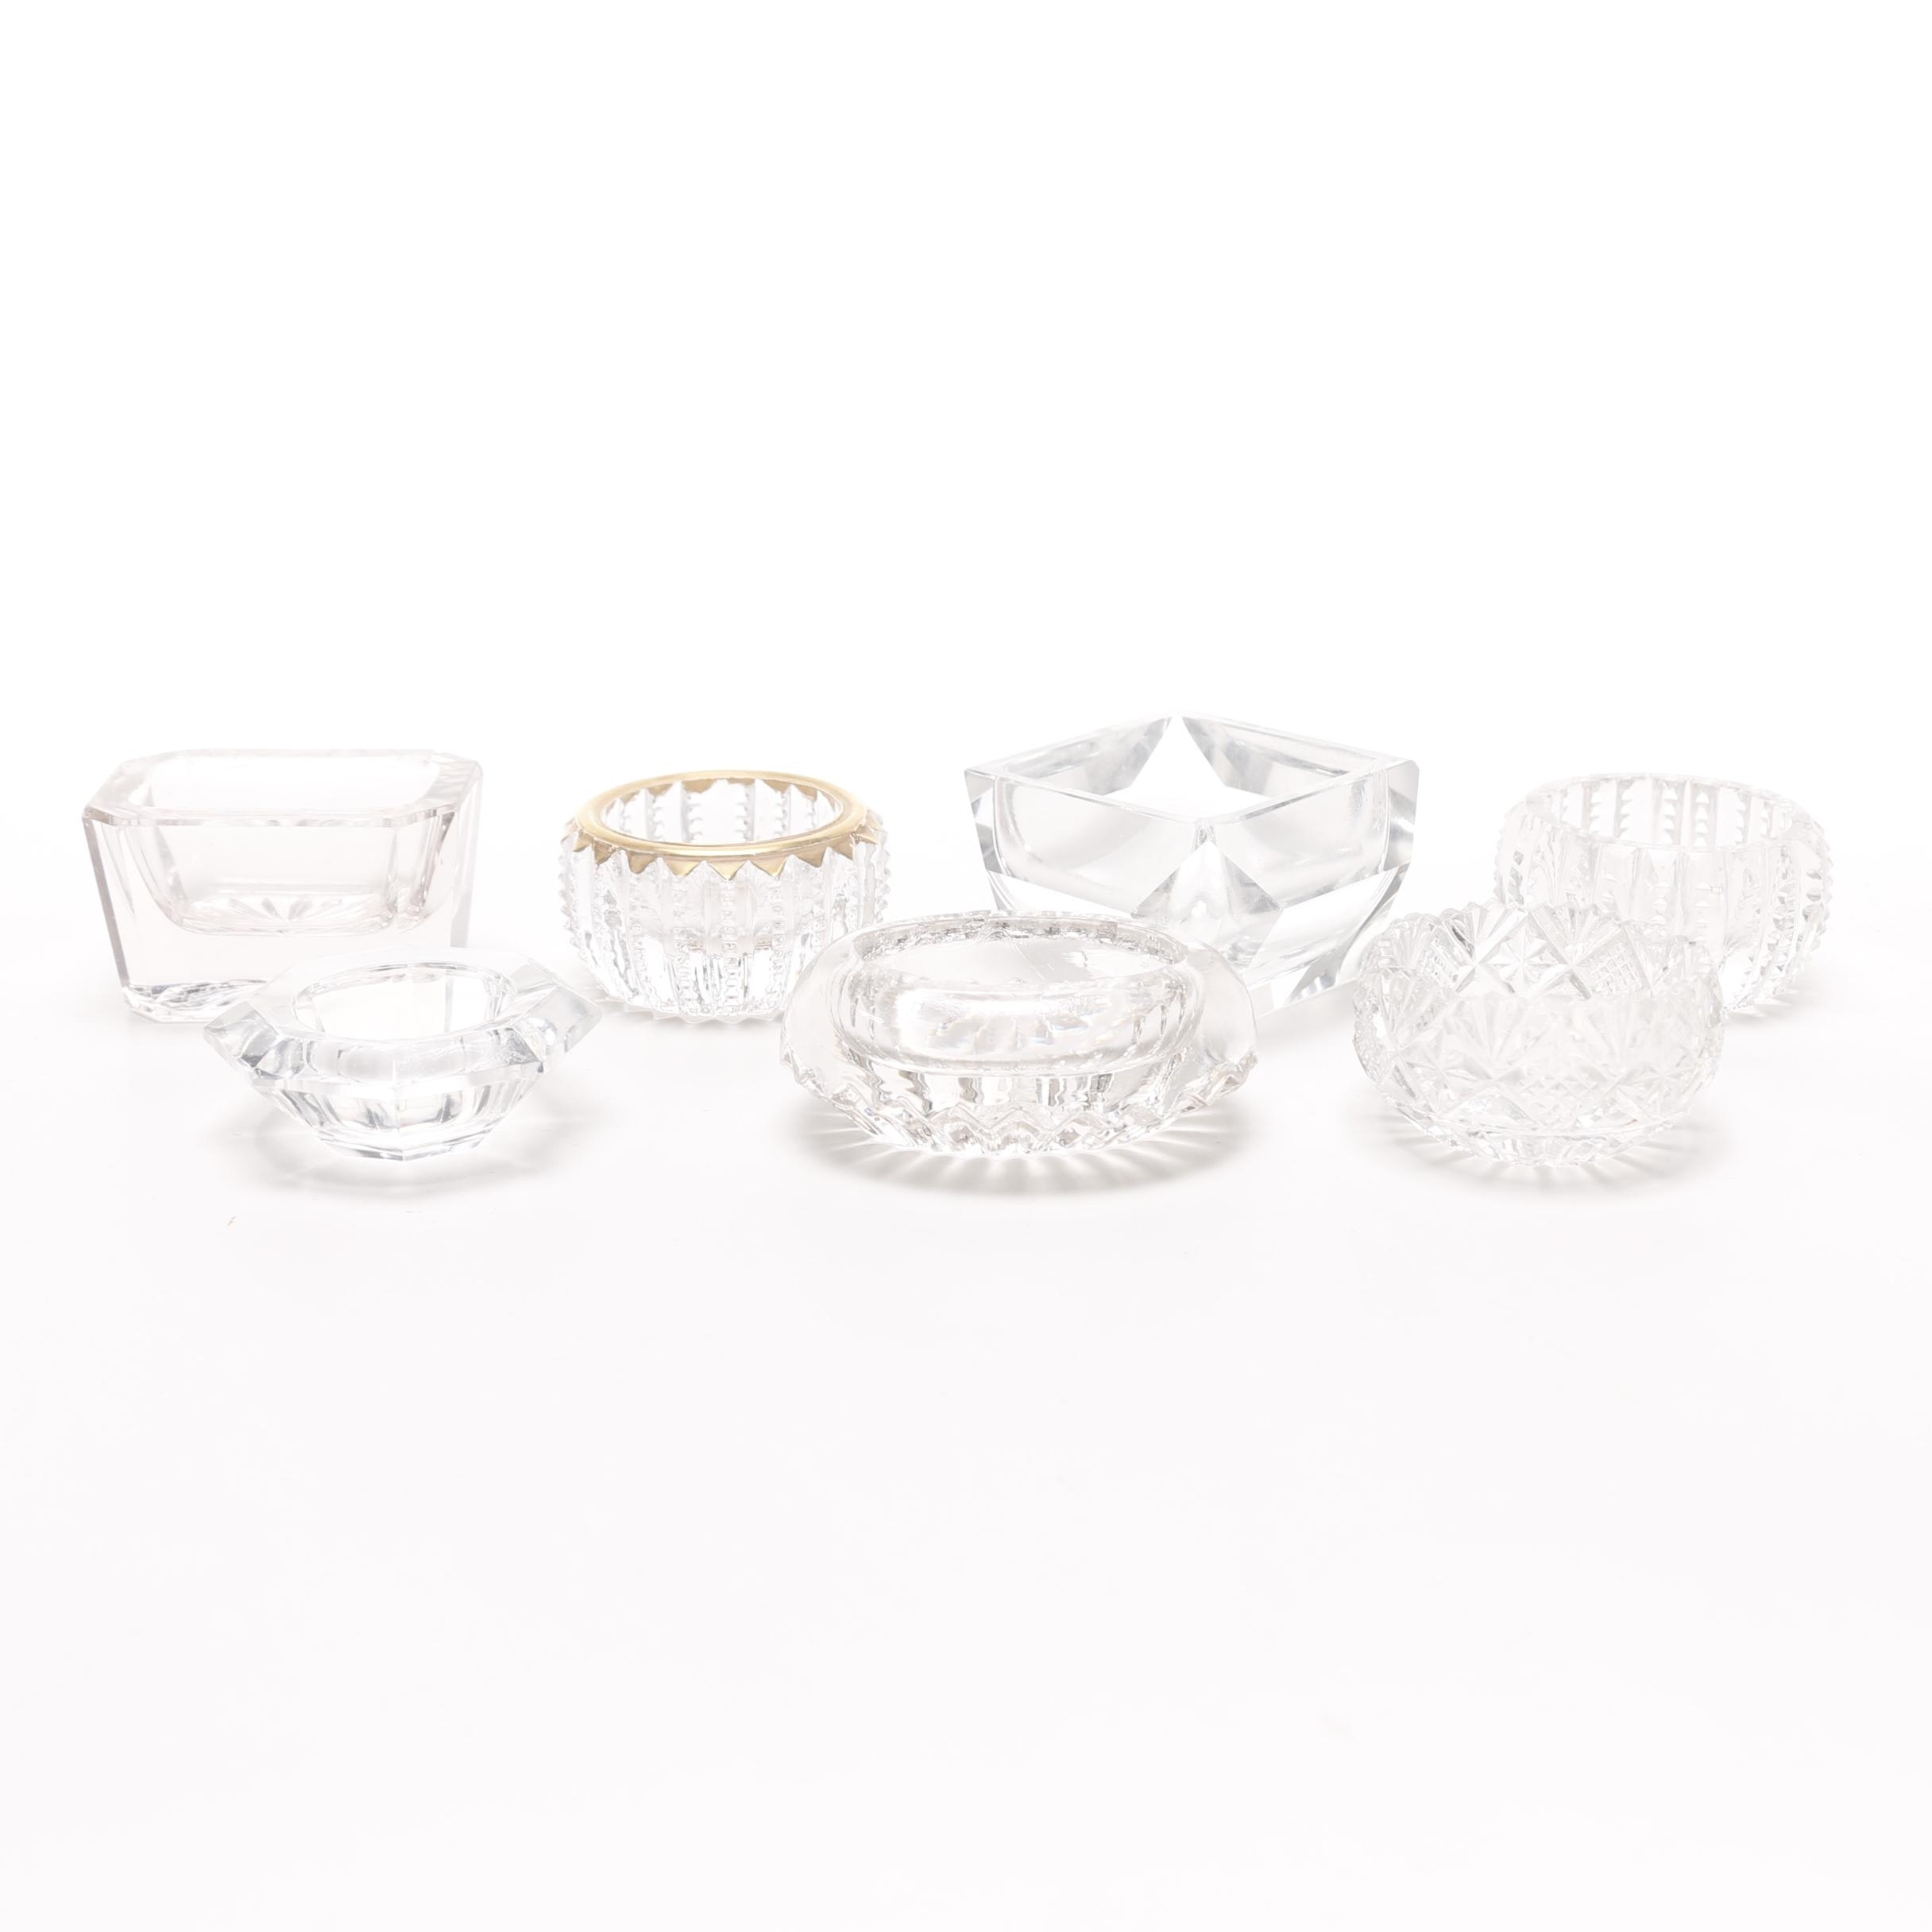 Crystal and Cut Glass Salt Cellars